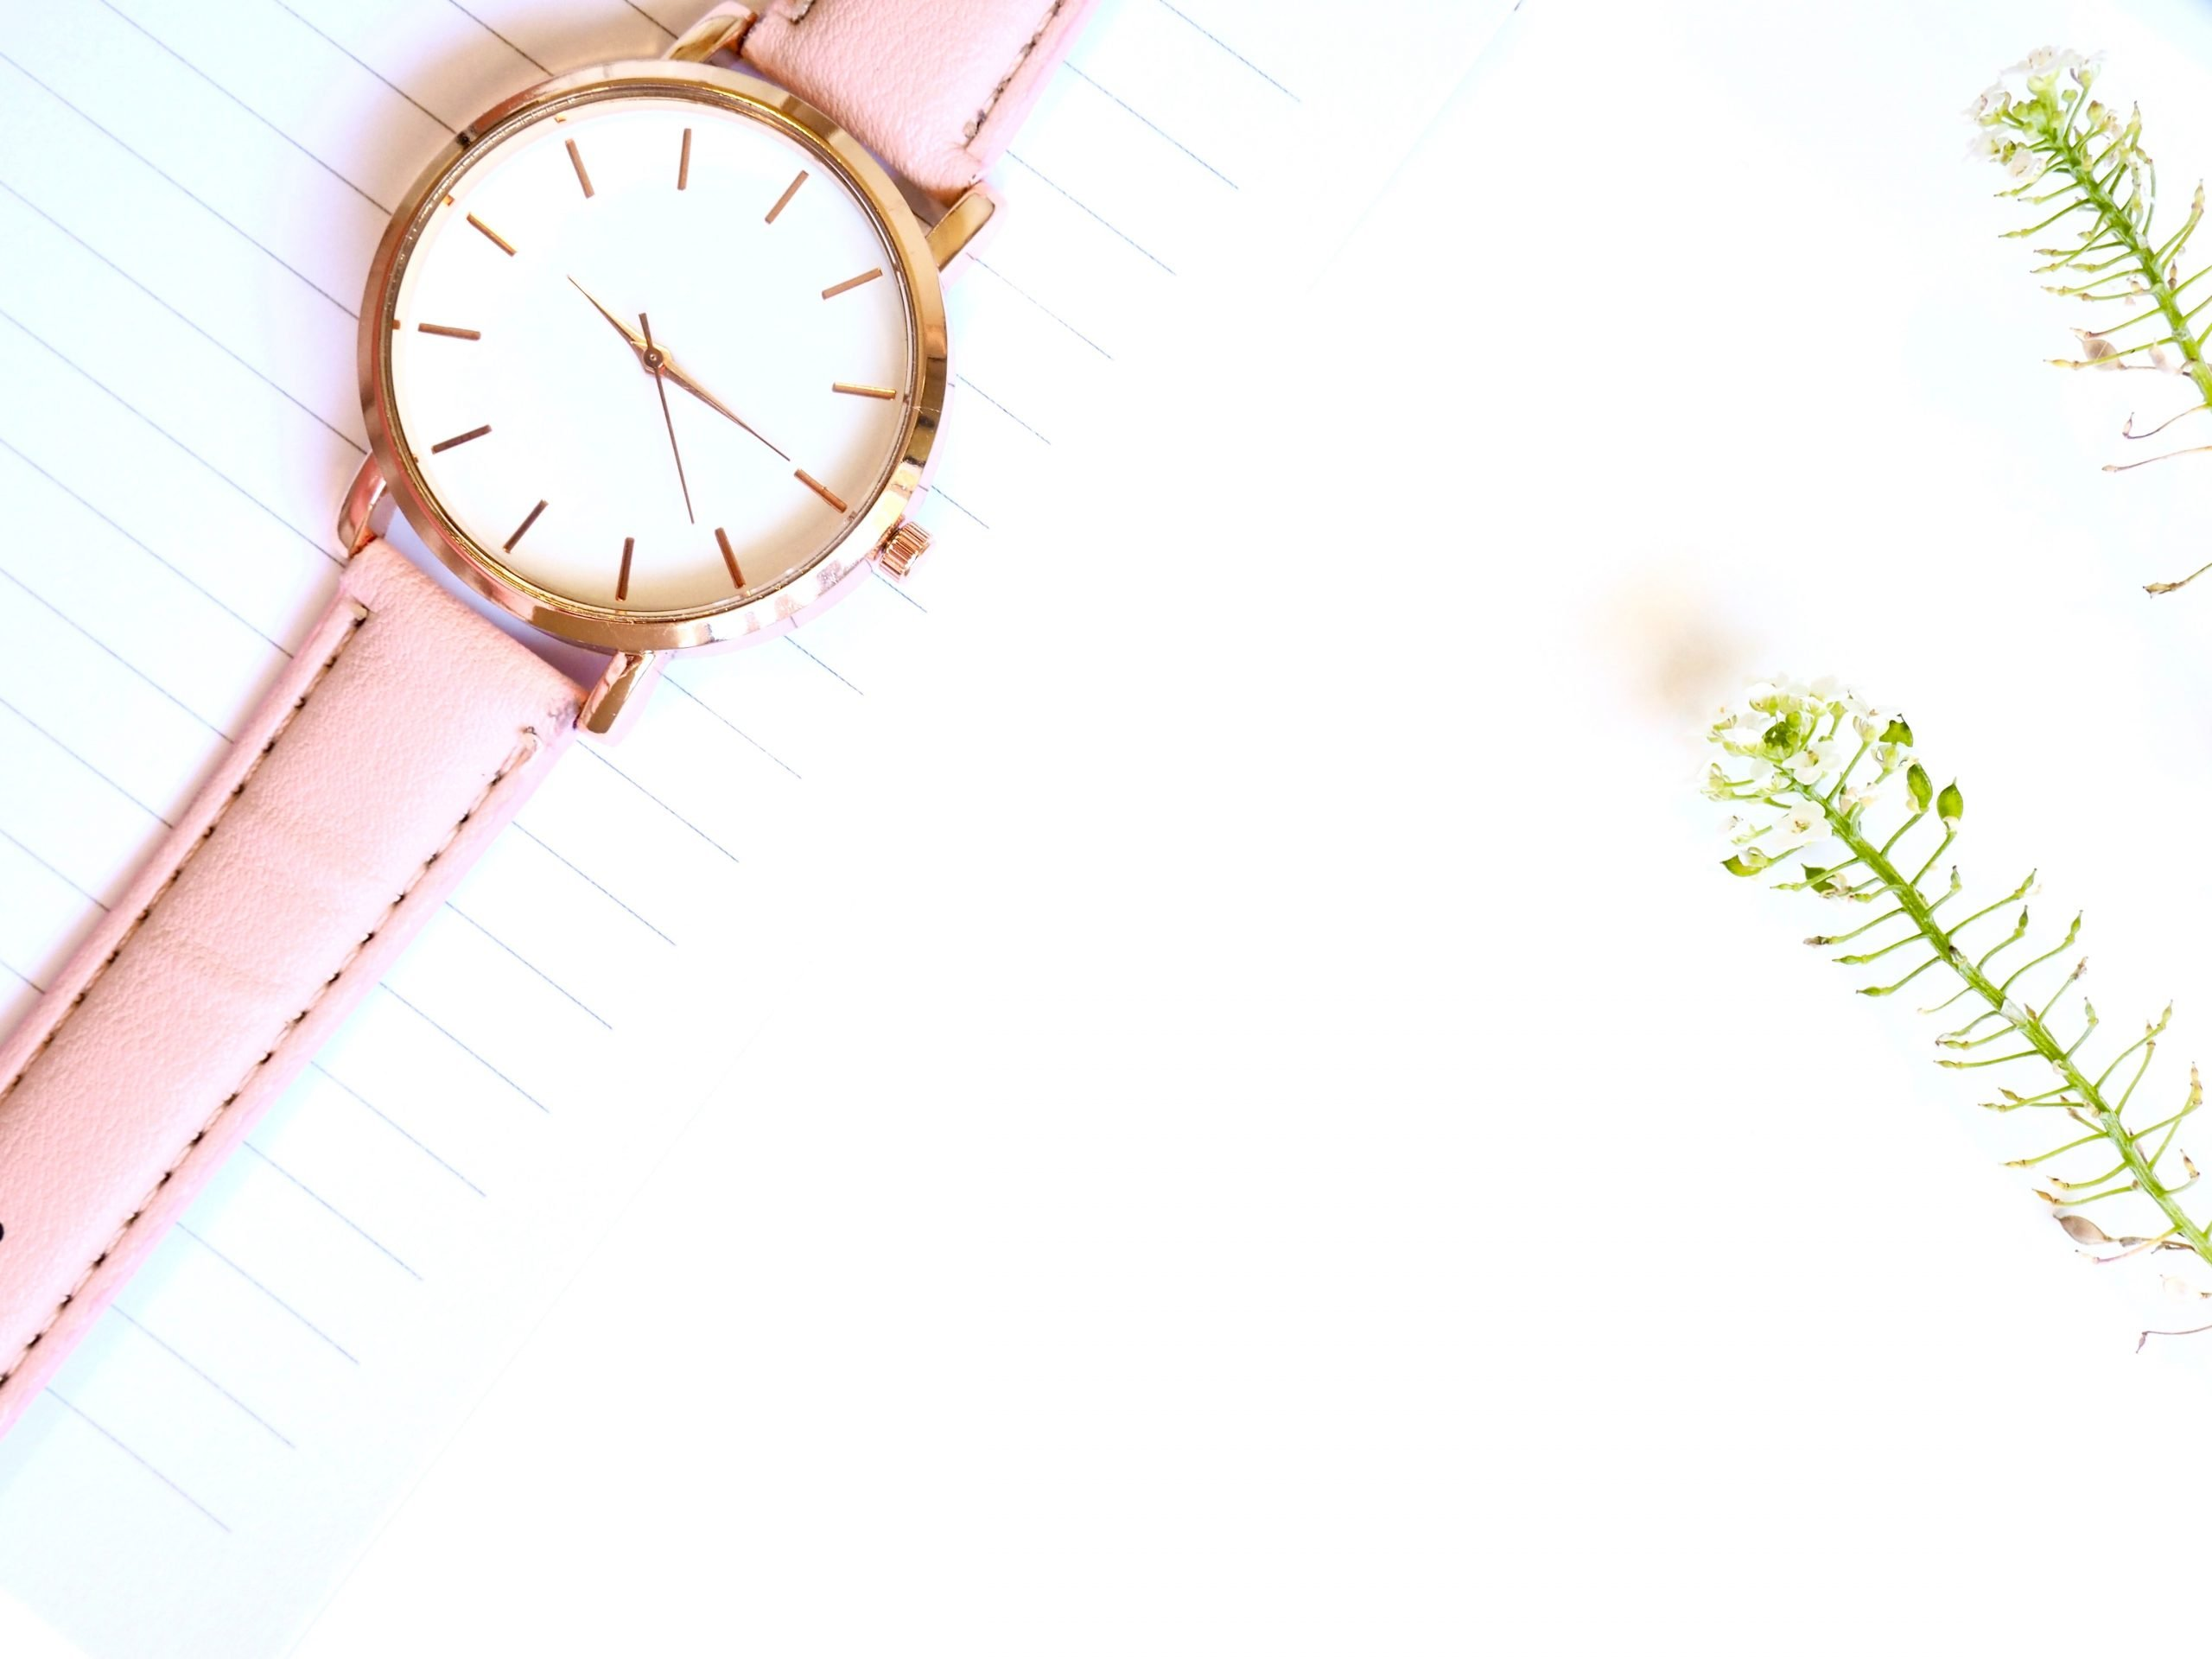 pink watch on a piece of notebook paper